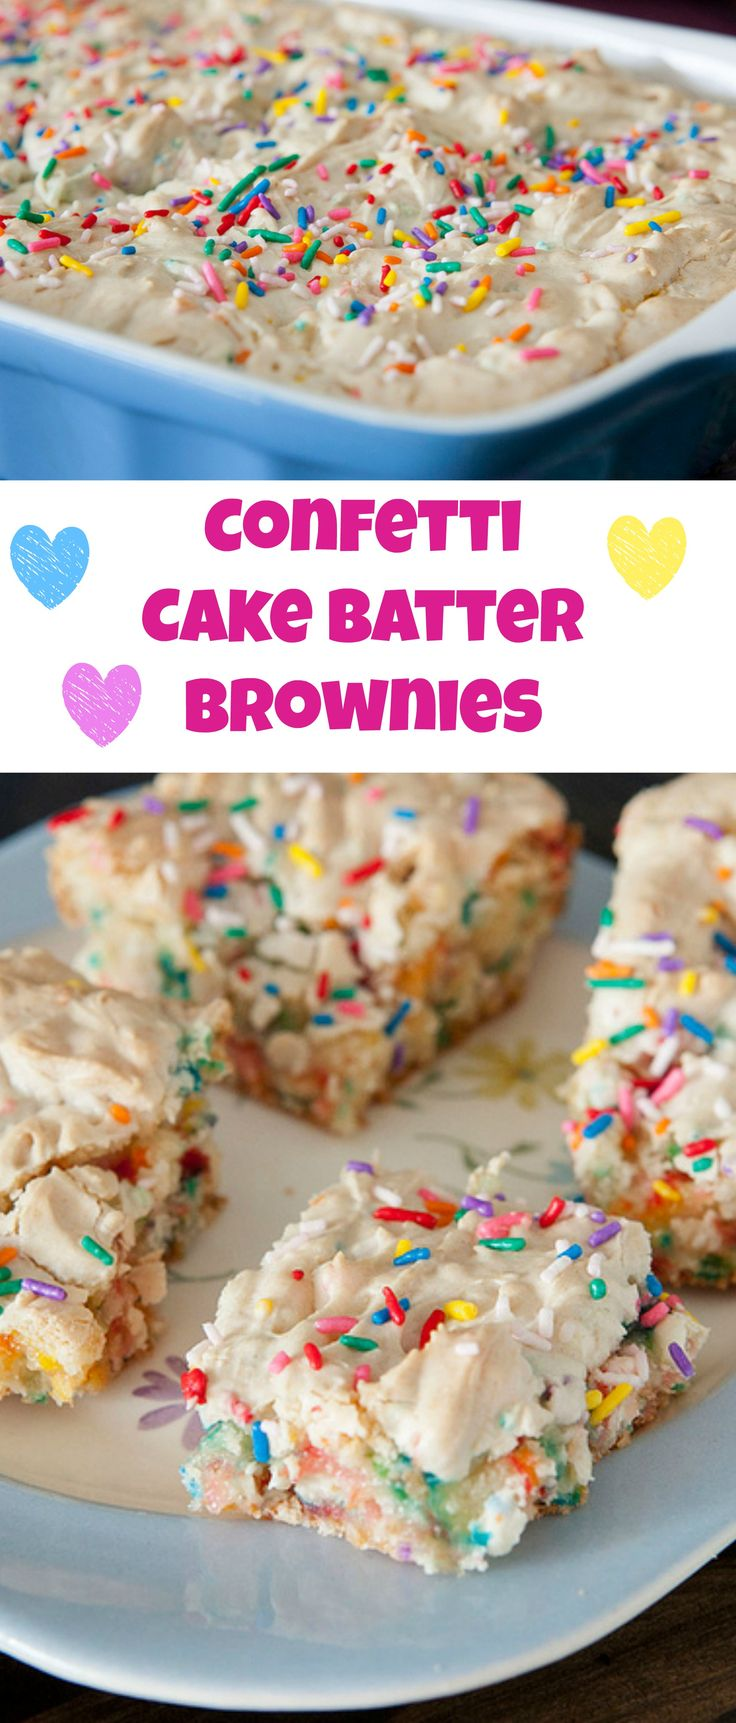 Confetti Sprinkle Cake Batter Brownies - these are ooey gooey good! These are perfect for a birthday party!